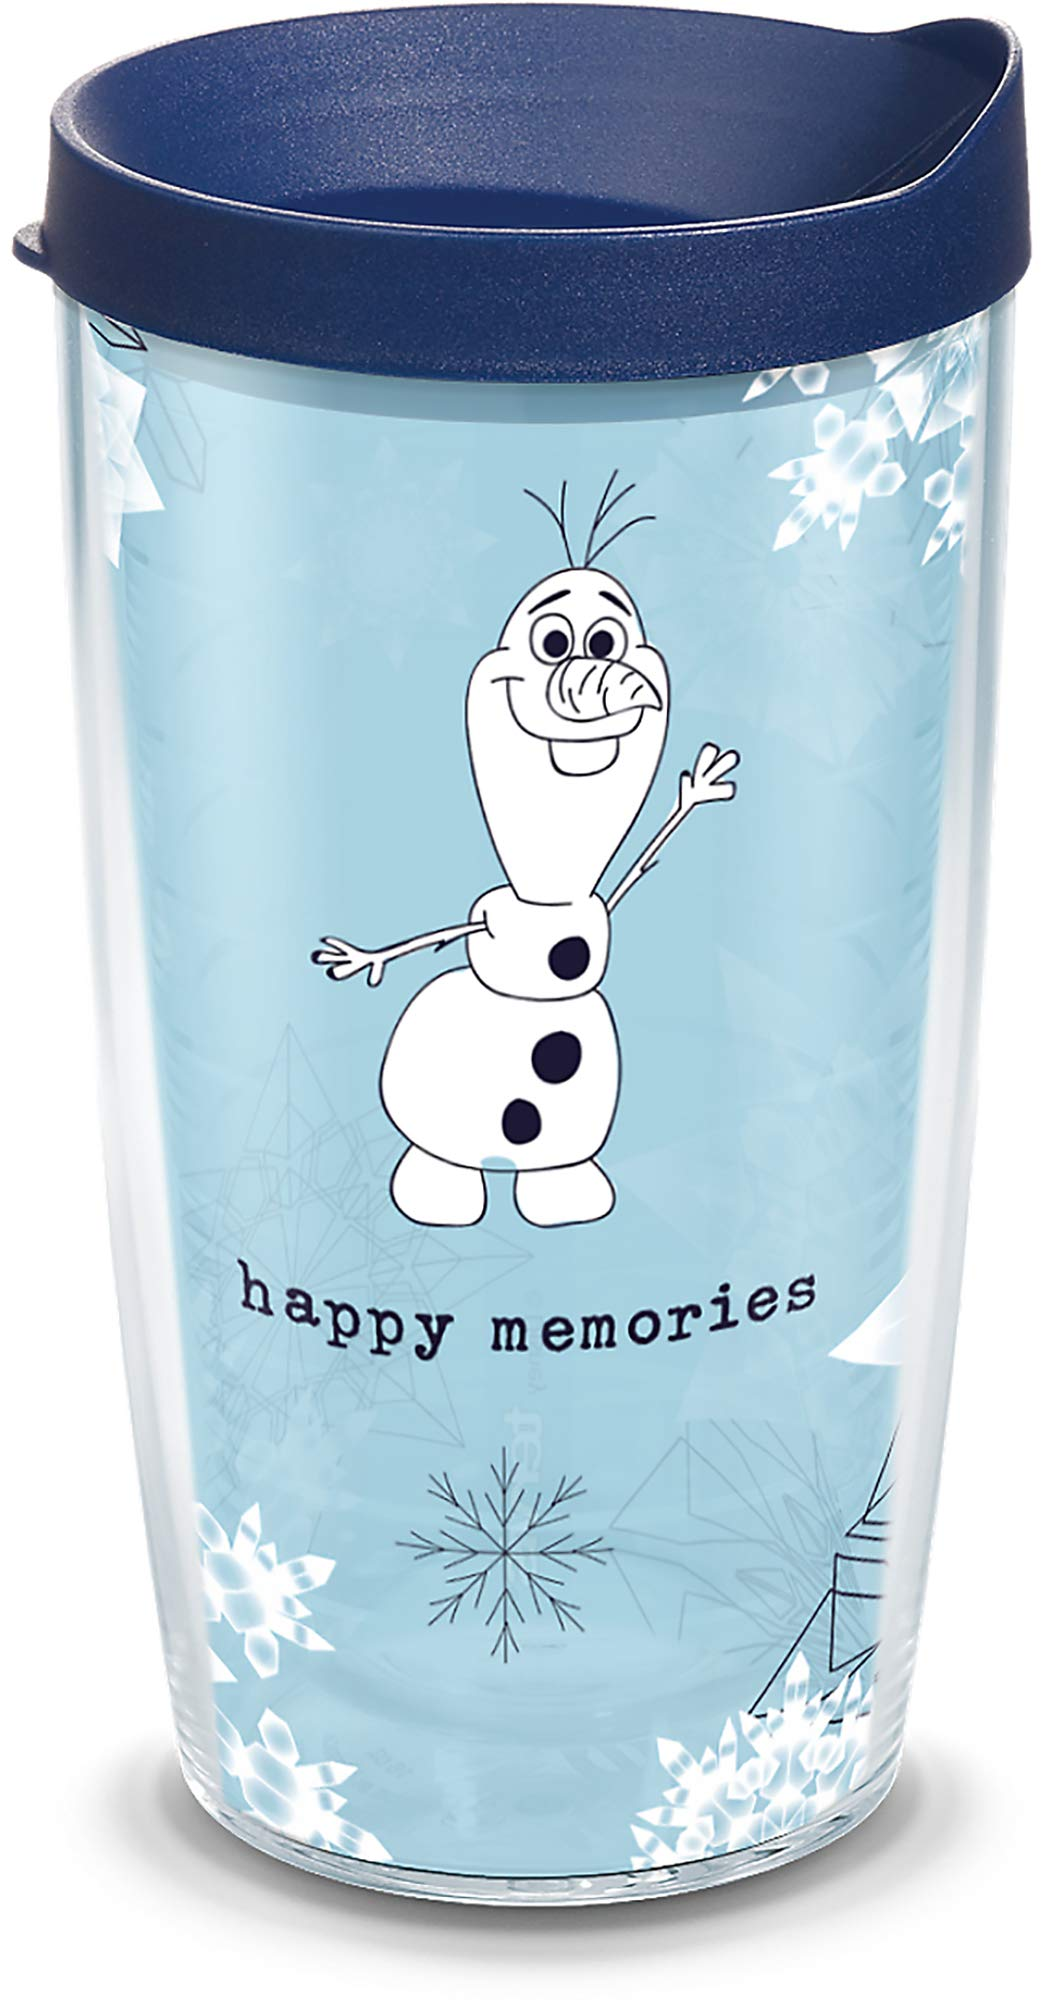 Tervis 1330427 Disney Frozen 2 Olaf BPA Free Insulated Travel Tumbler with Wrap & Lid, 16 oz - Tritan, Clear by Tervis